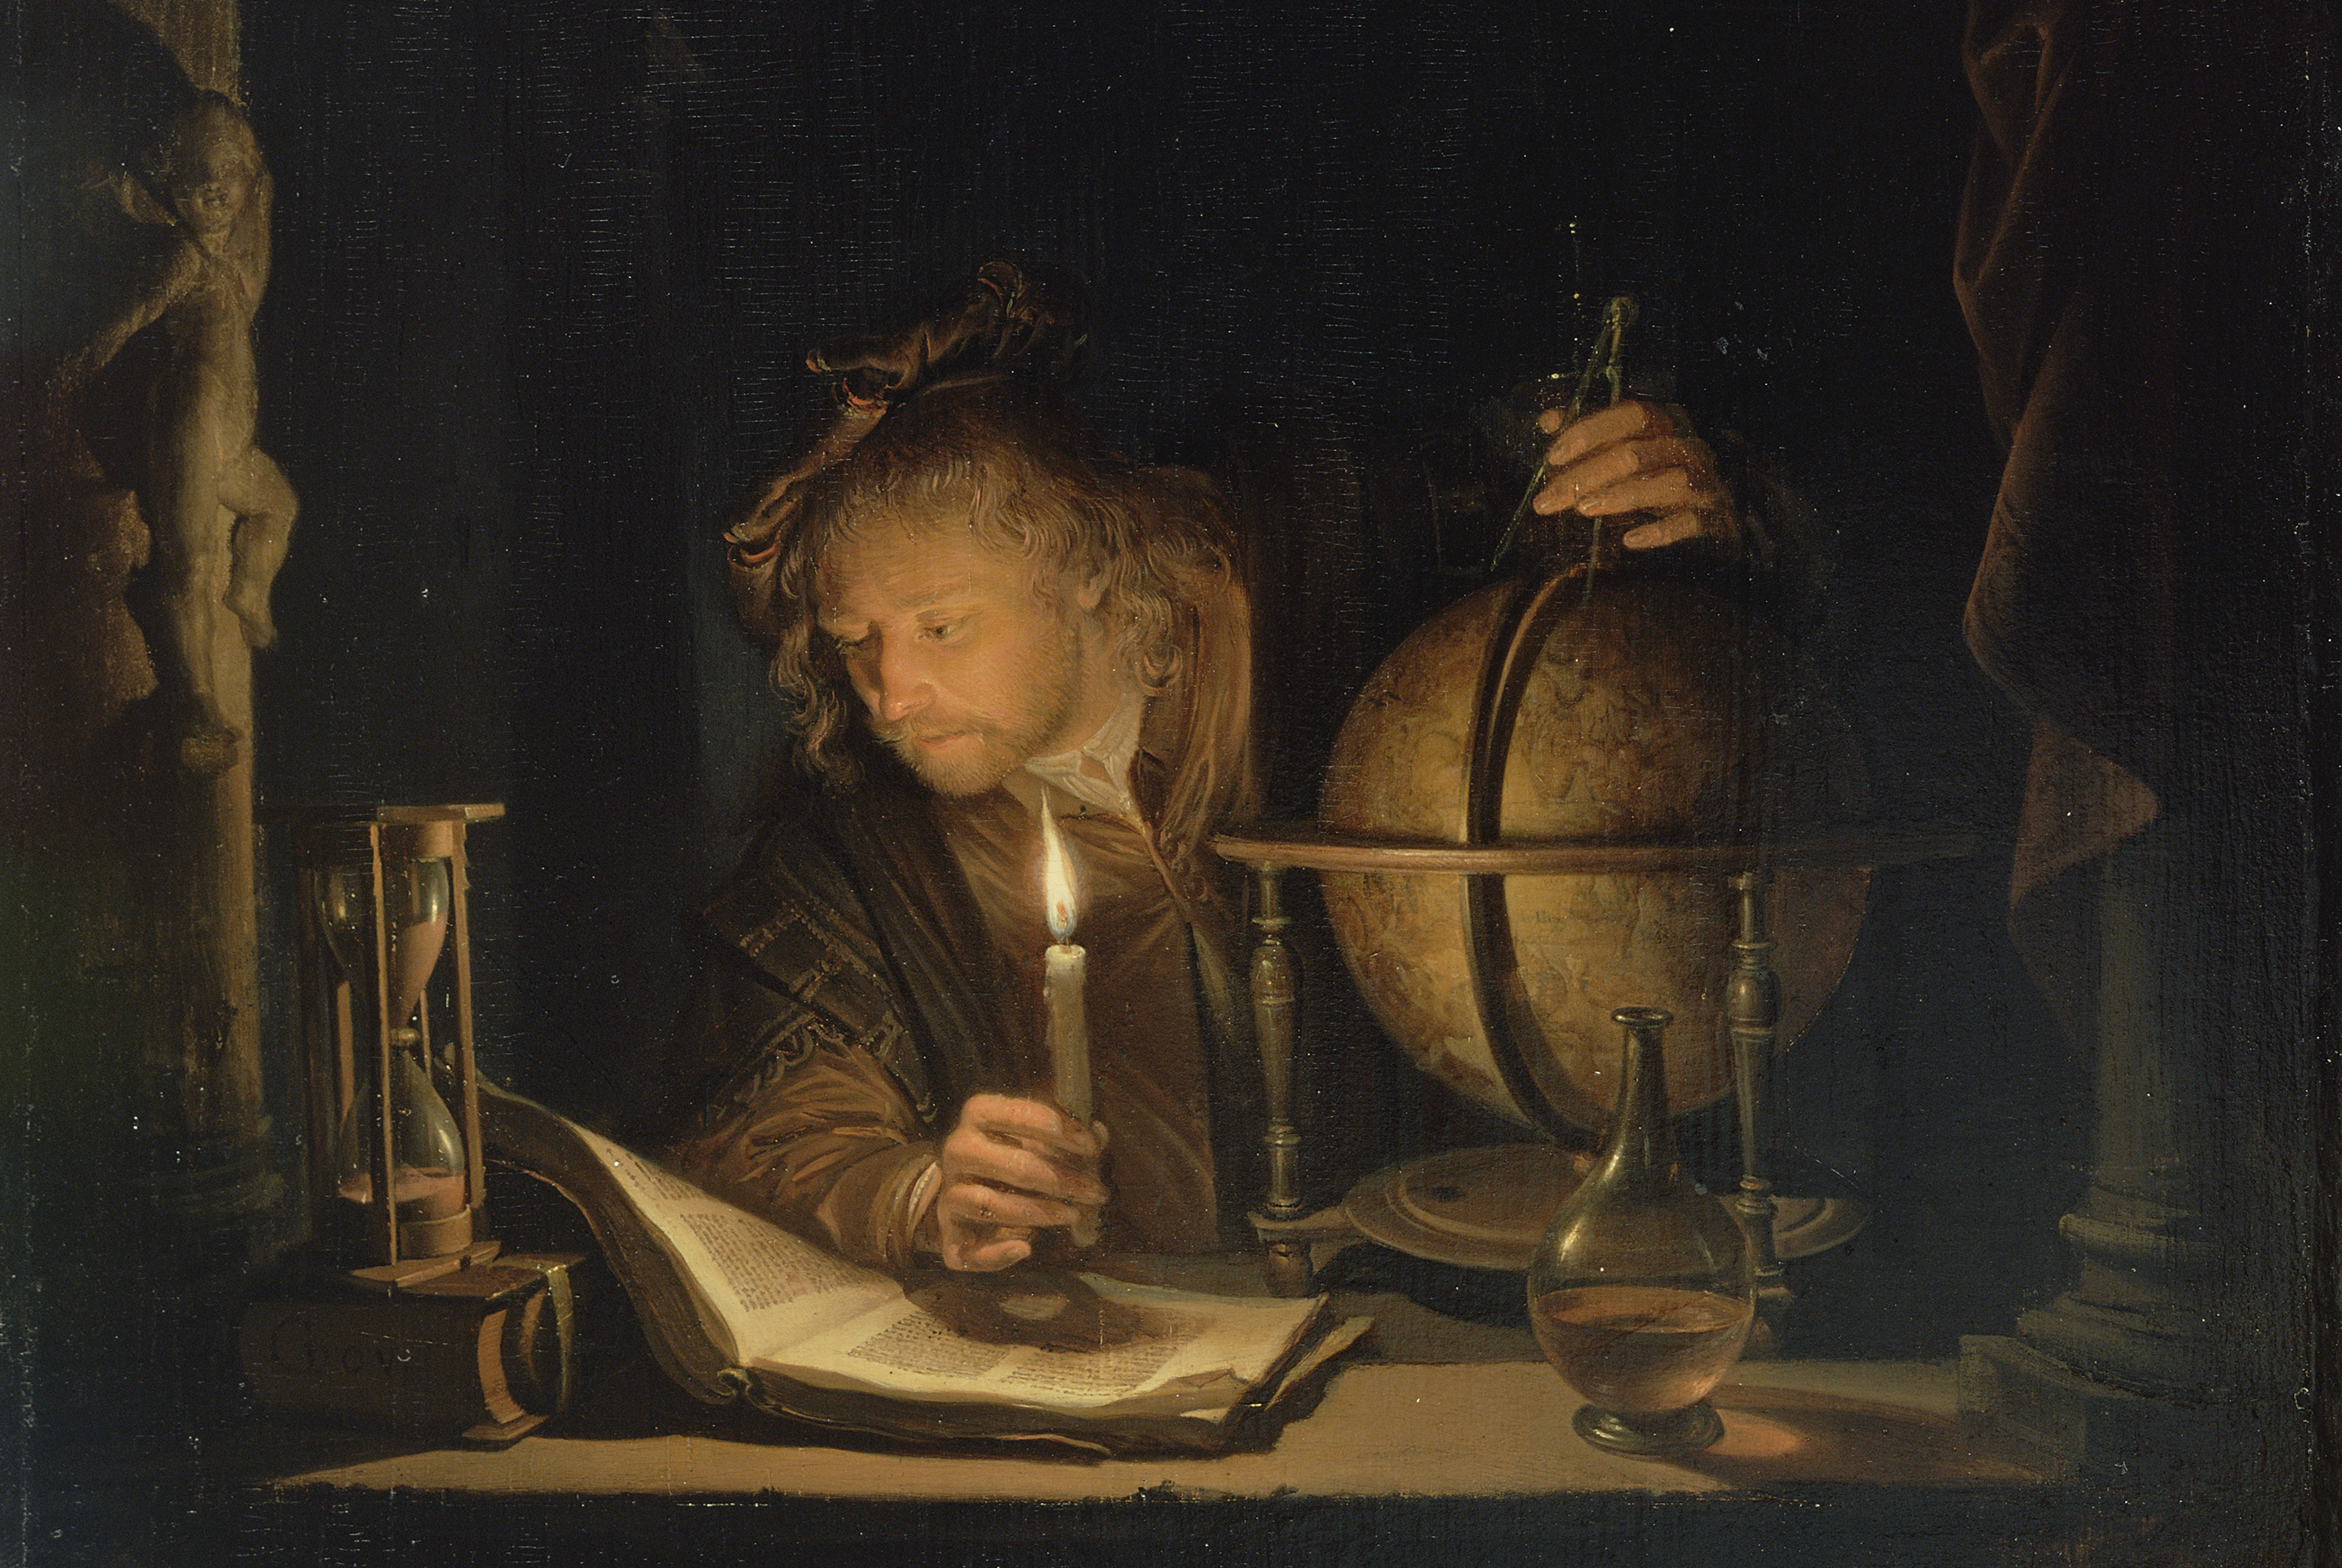 Astronomer by Candlelight